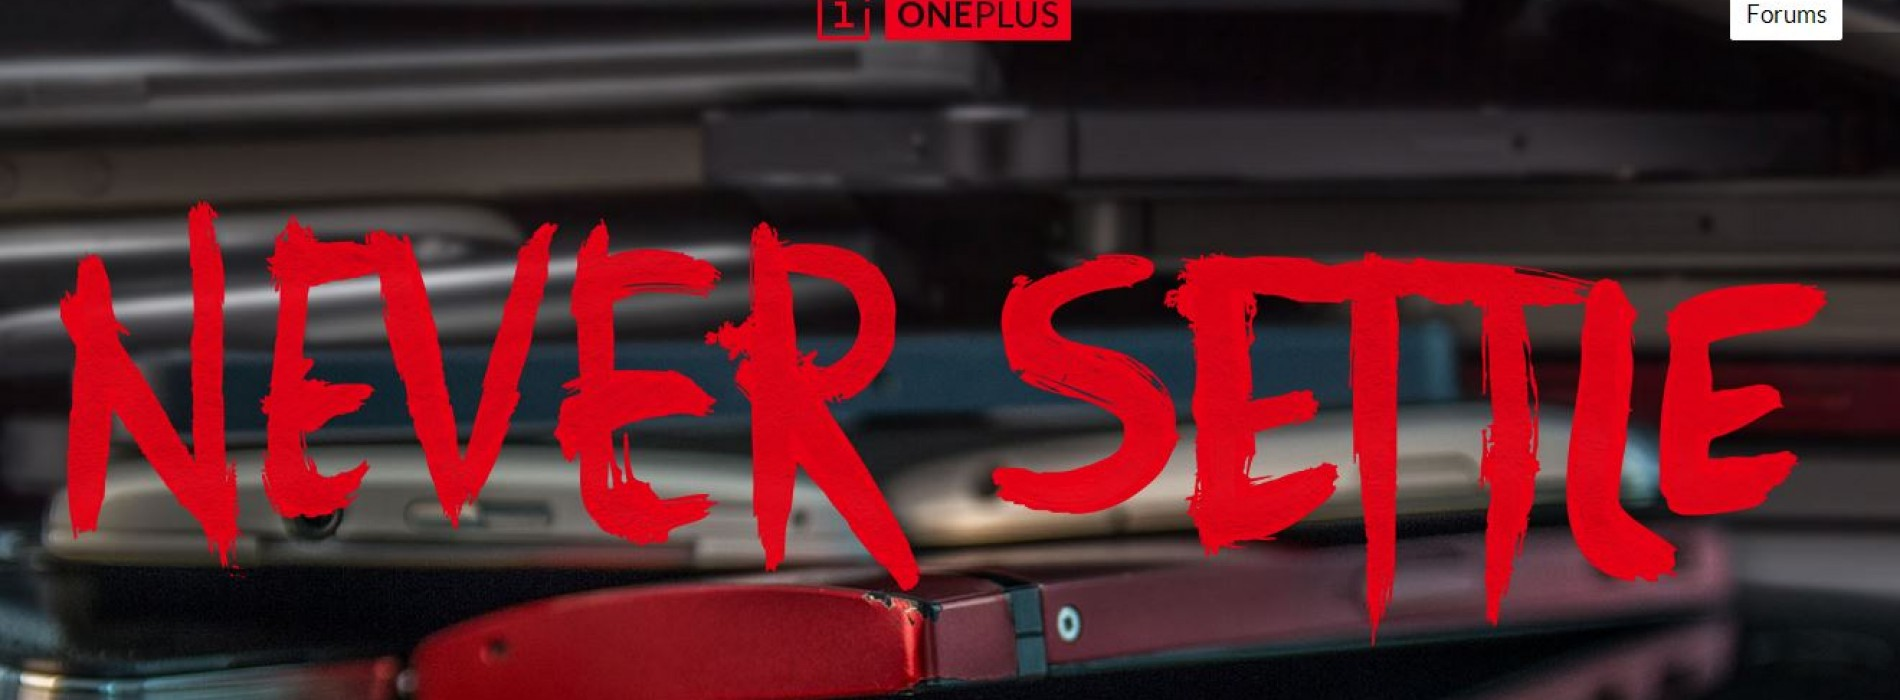 "OnePlus revealed as Cyanogen's new partner, OnePlus One coming ""first half of 2014″"